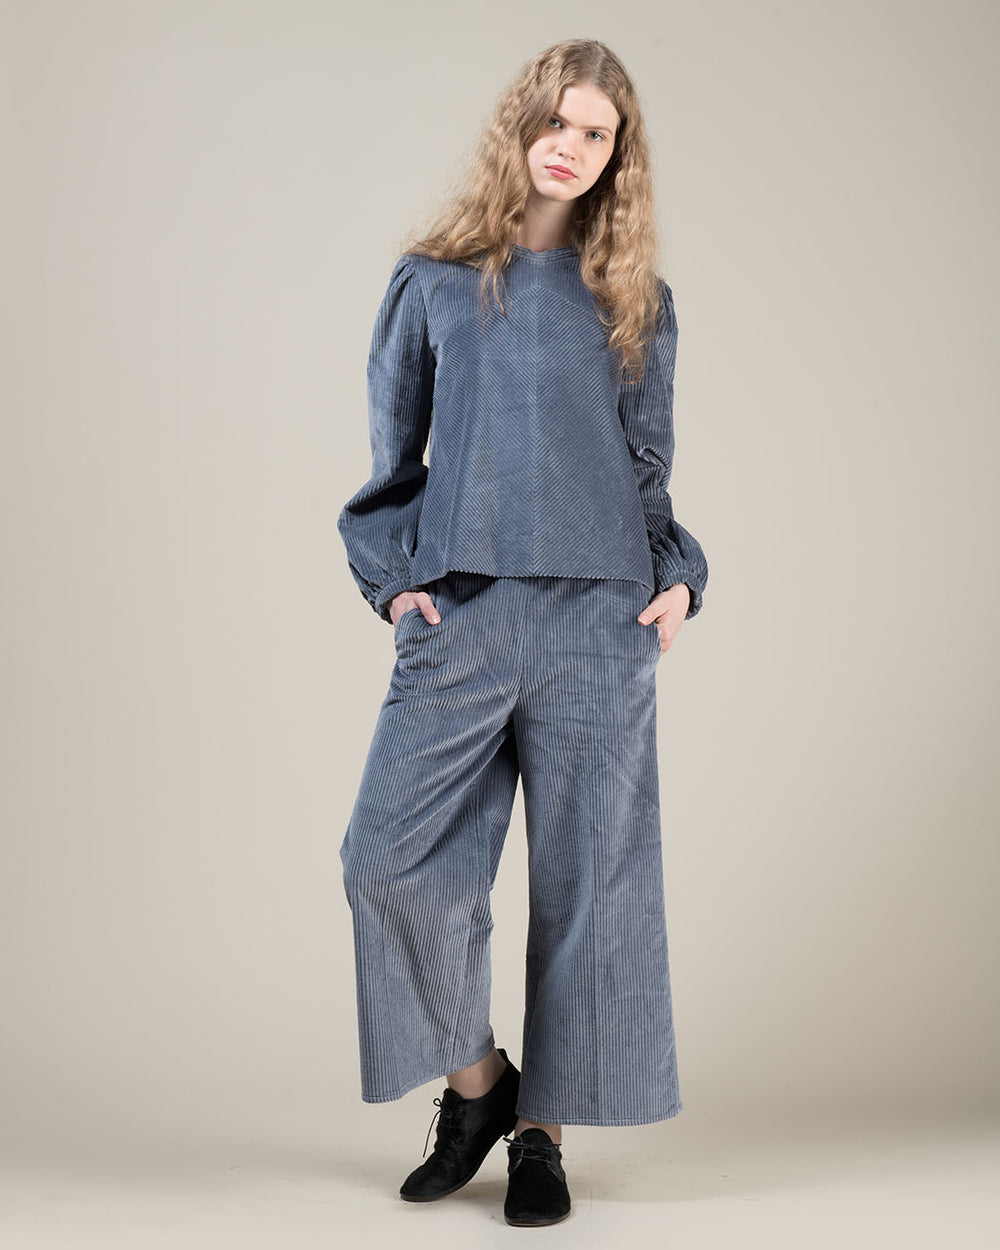 Blue Corduroy Pants